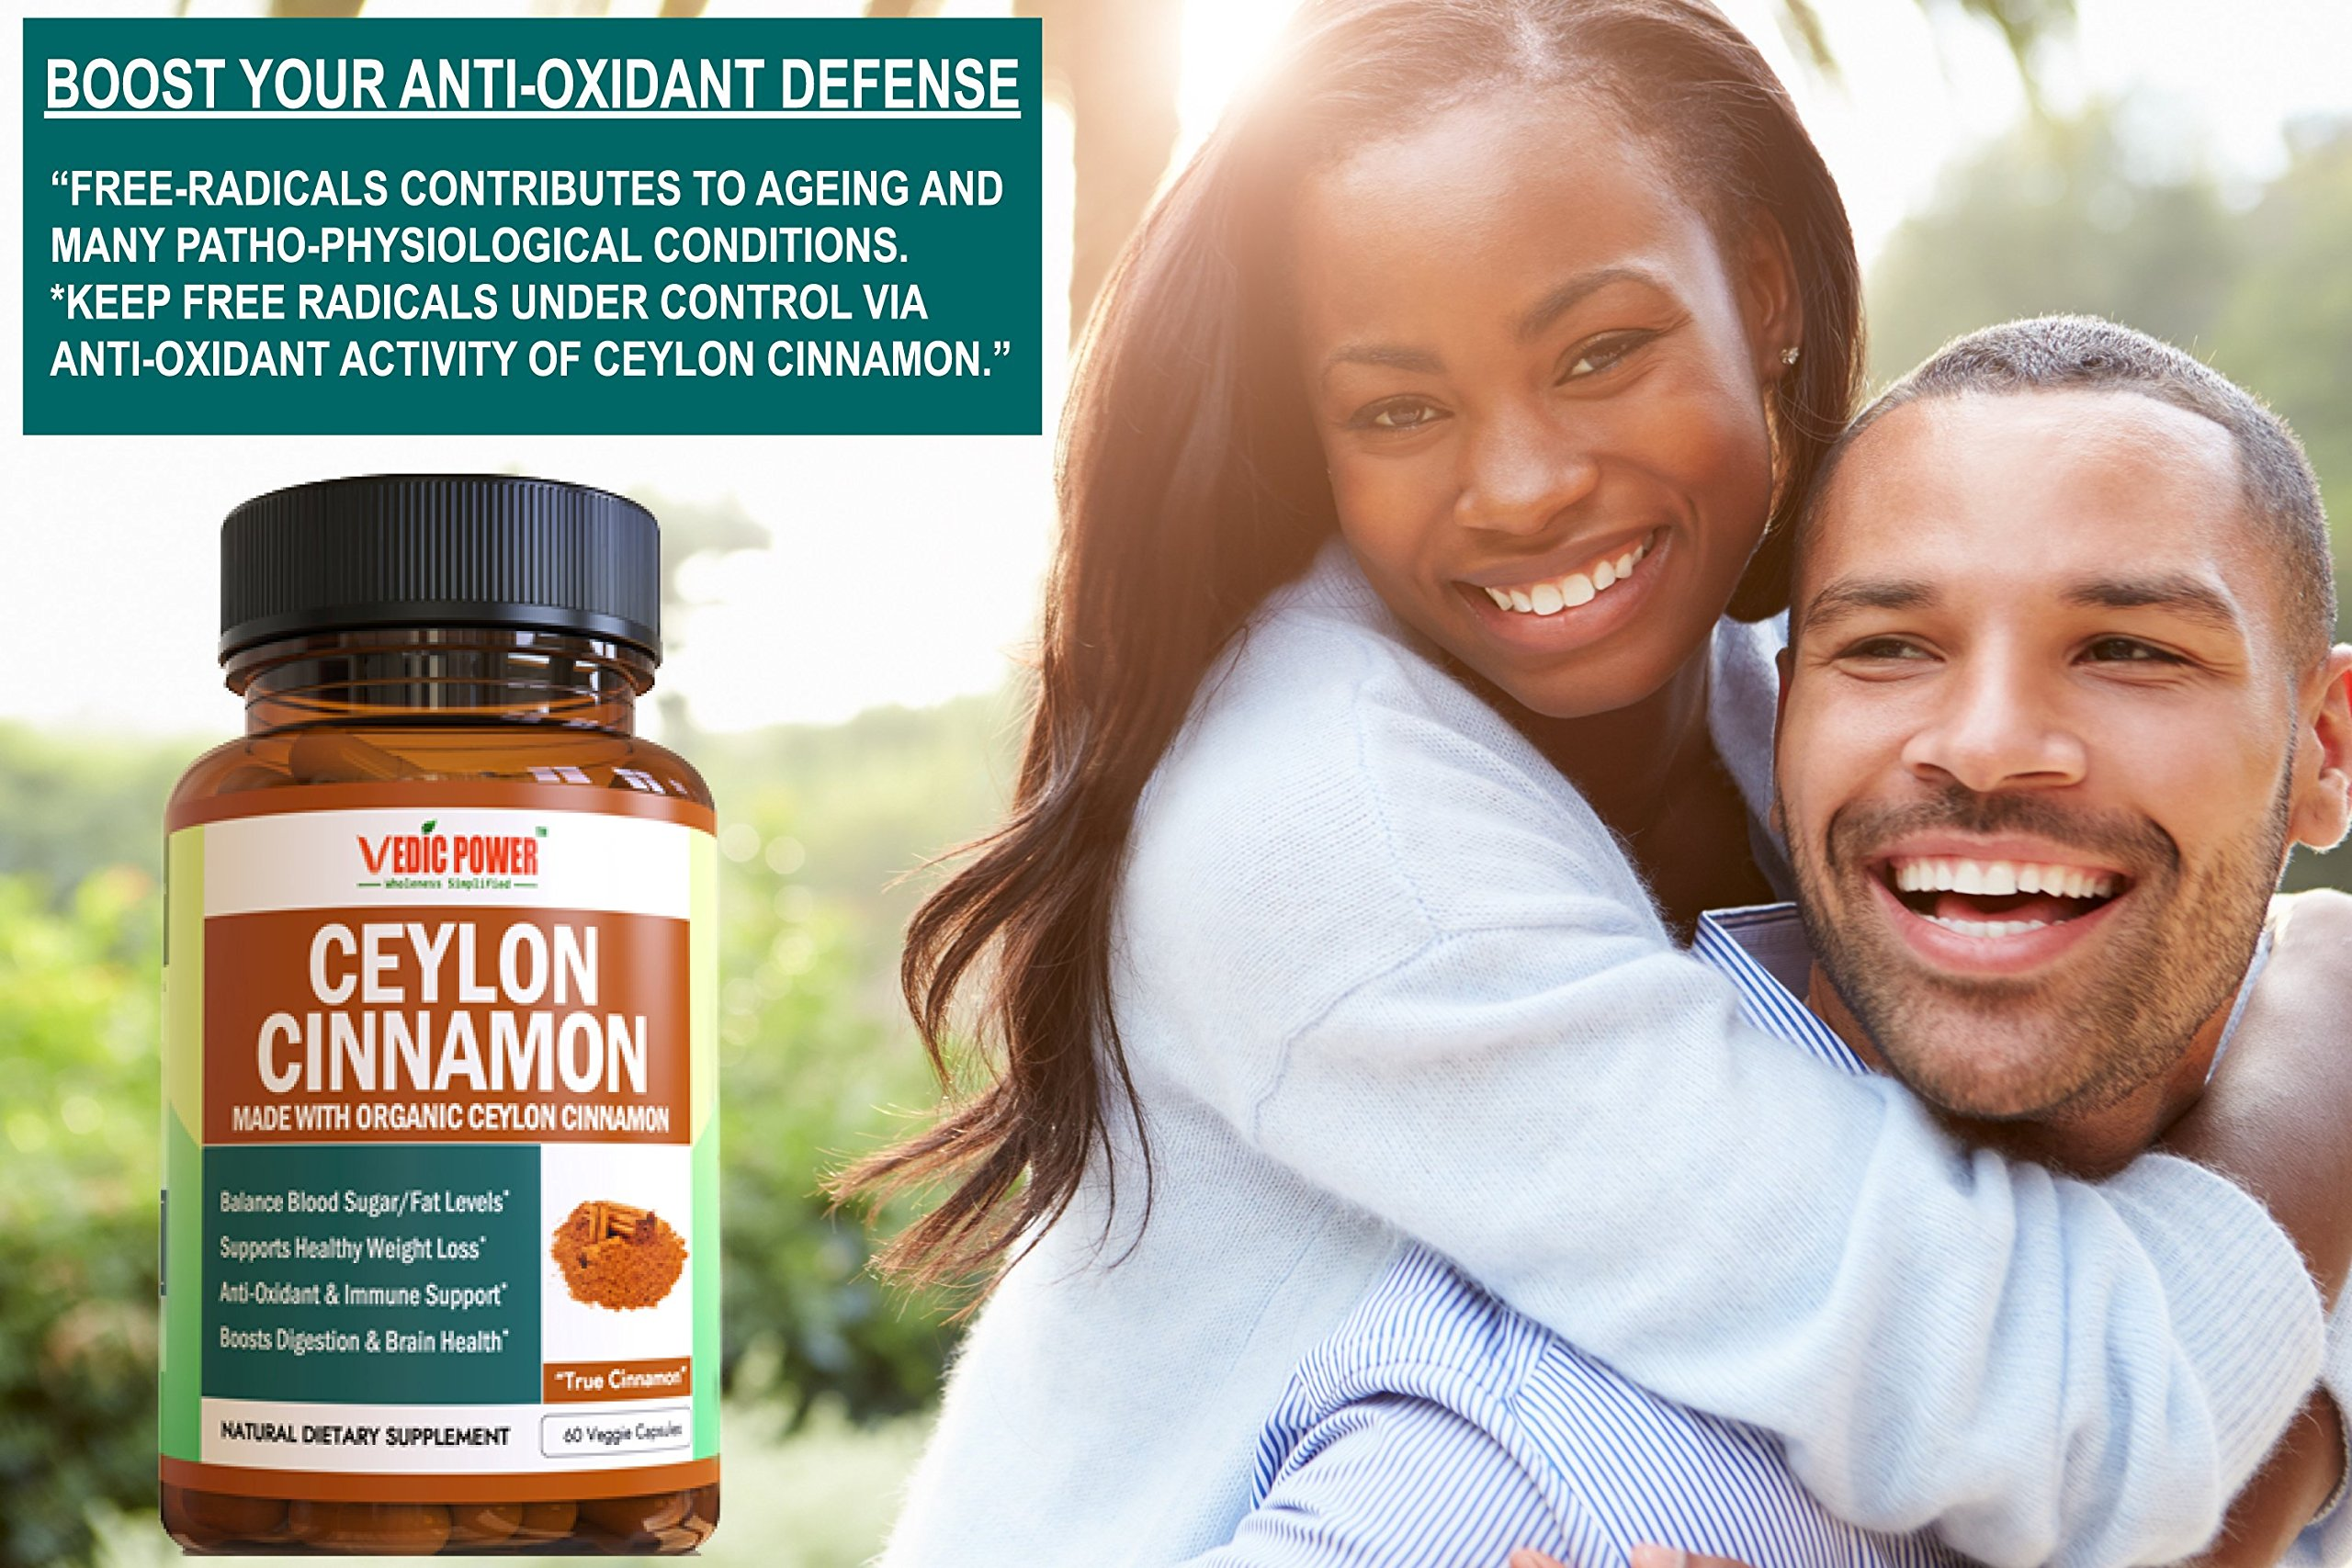 Organic Ceylon Cinnamon (UDAF Certified) 60 Capsules, 1200 mg per Serving Helps Manage Blood Sugar/Fat Levels, Boosts Heart Health, Anti-Oxidant & Immune Support by Vedic Power (TM) Wholeness Simplified (Image #6)